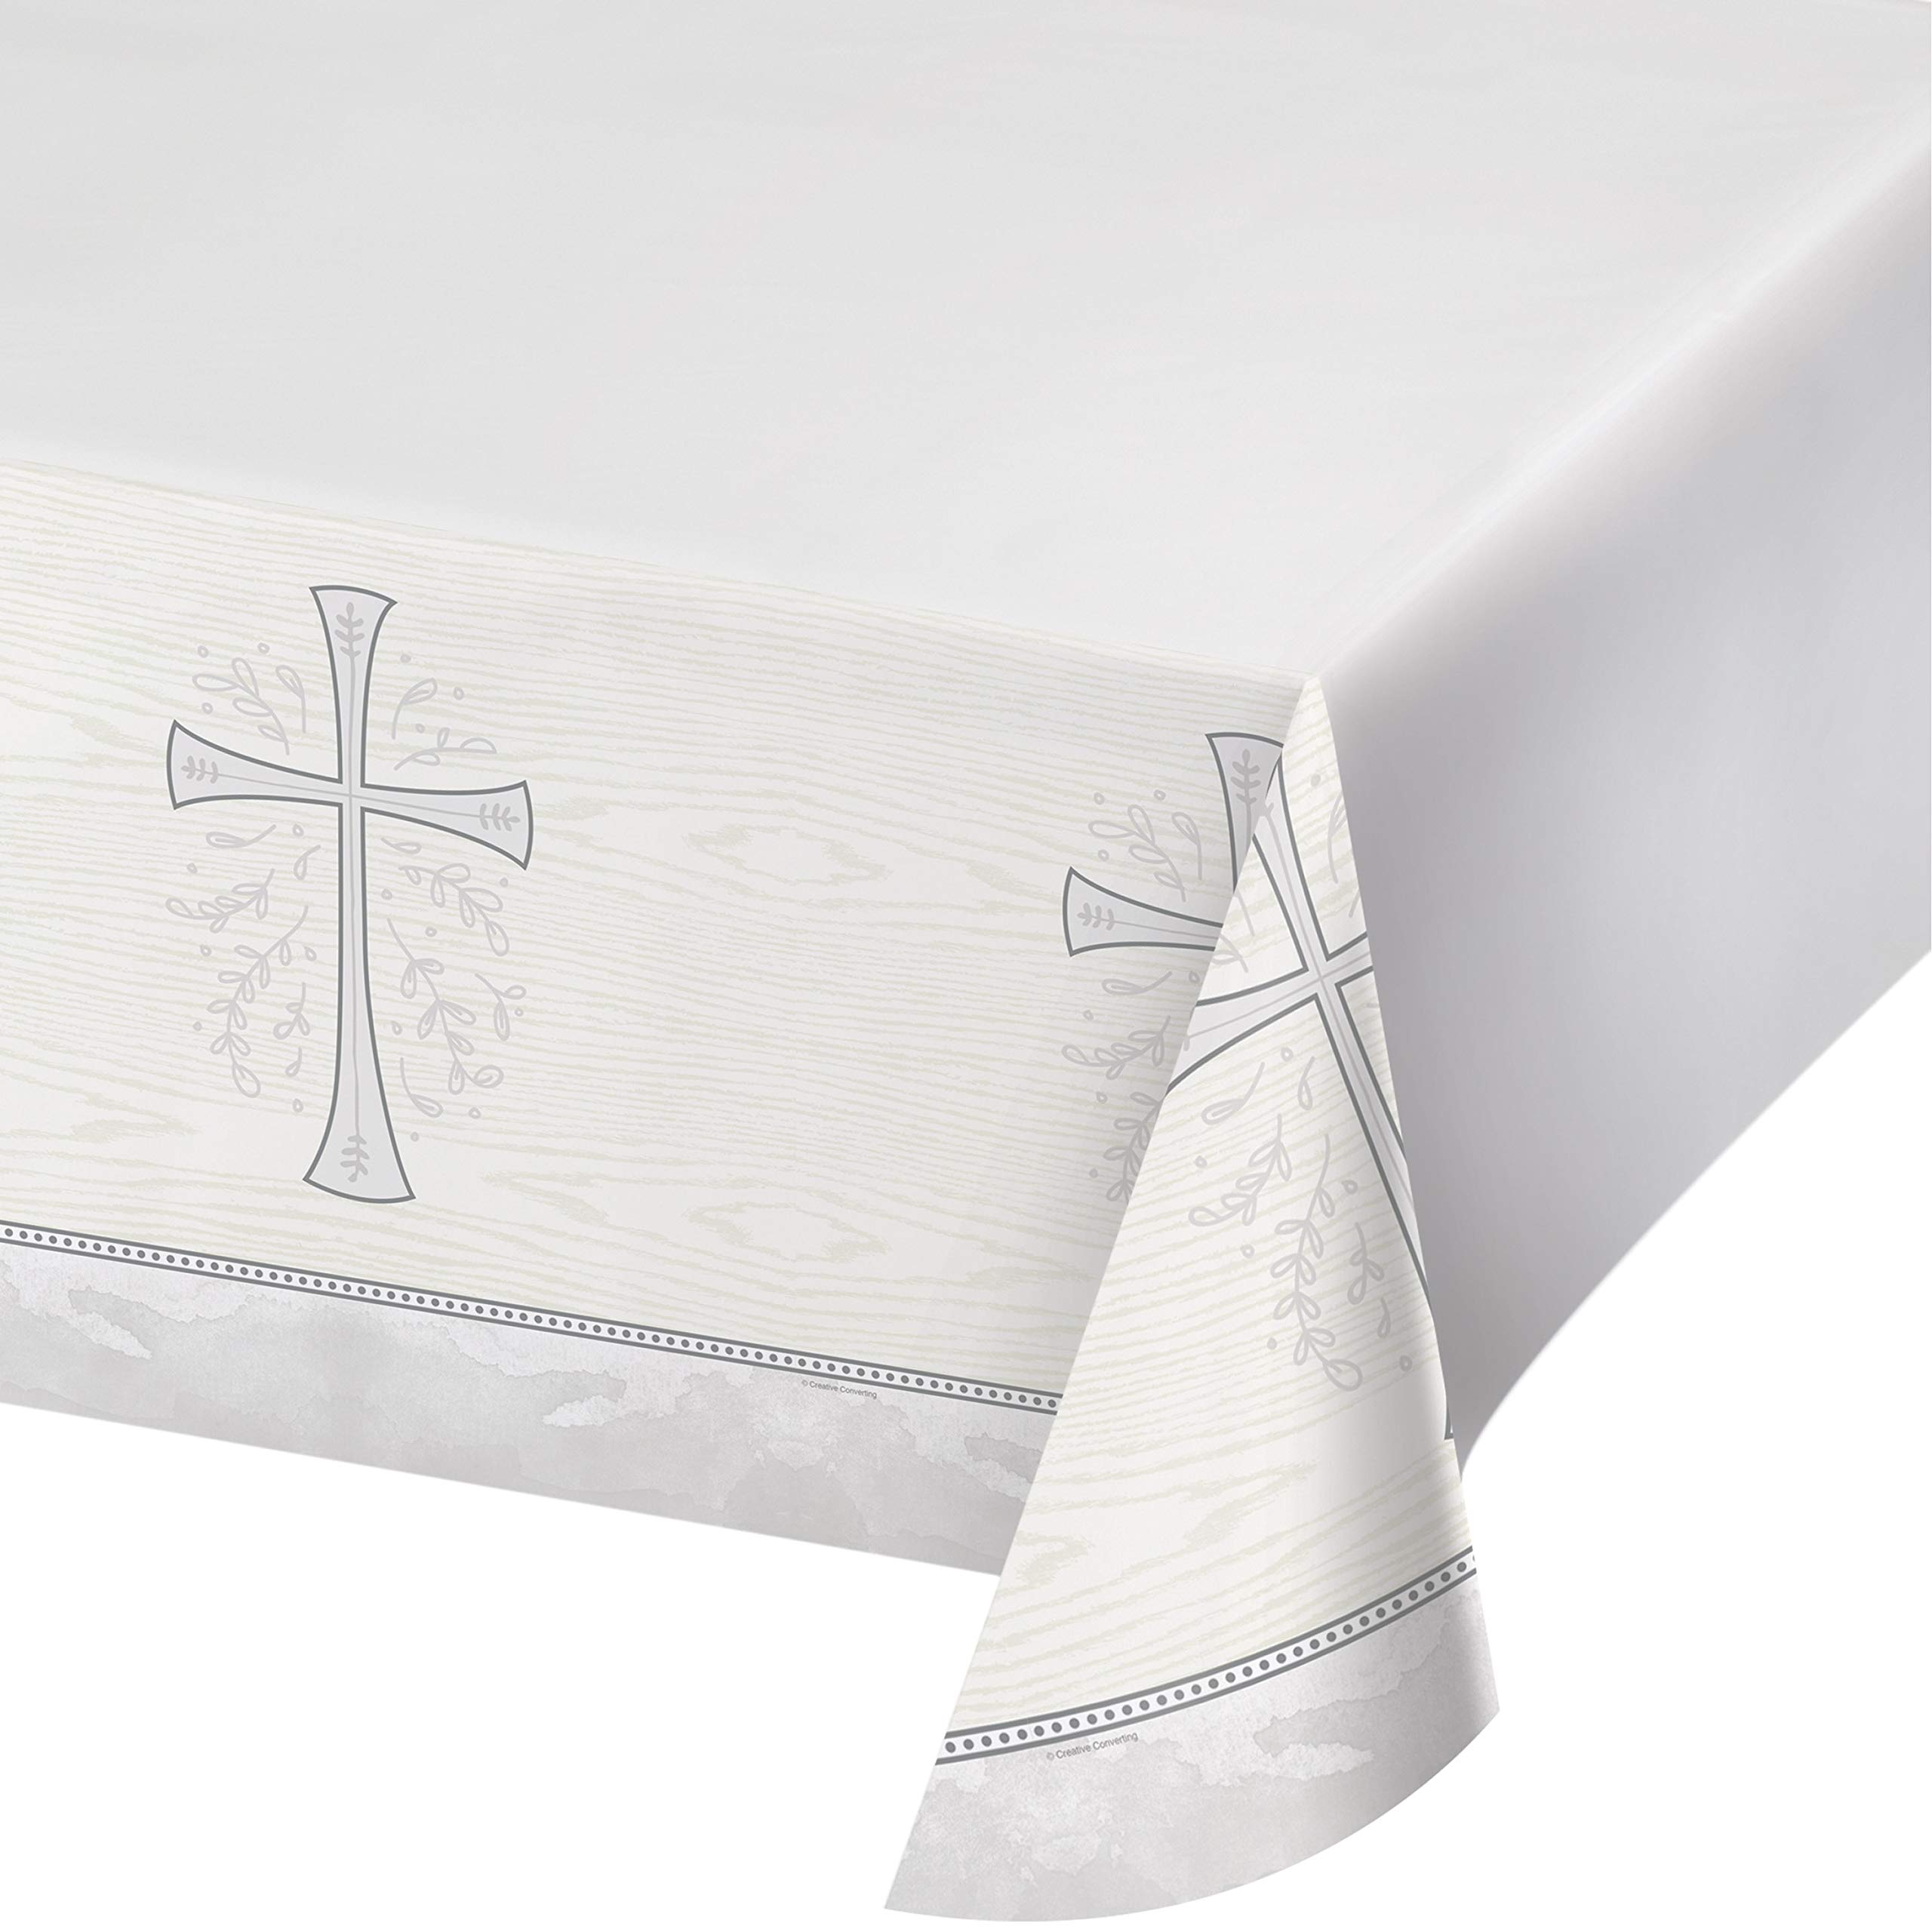 Divinity Silver Plastic Tablecloths, 3 ct by Creative Converting